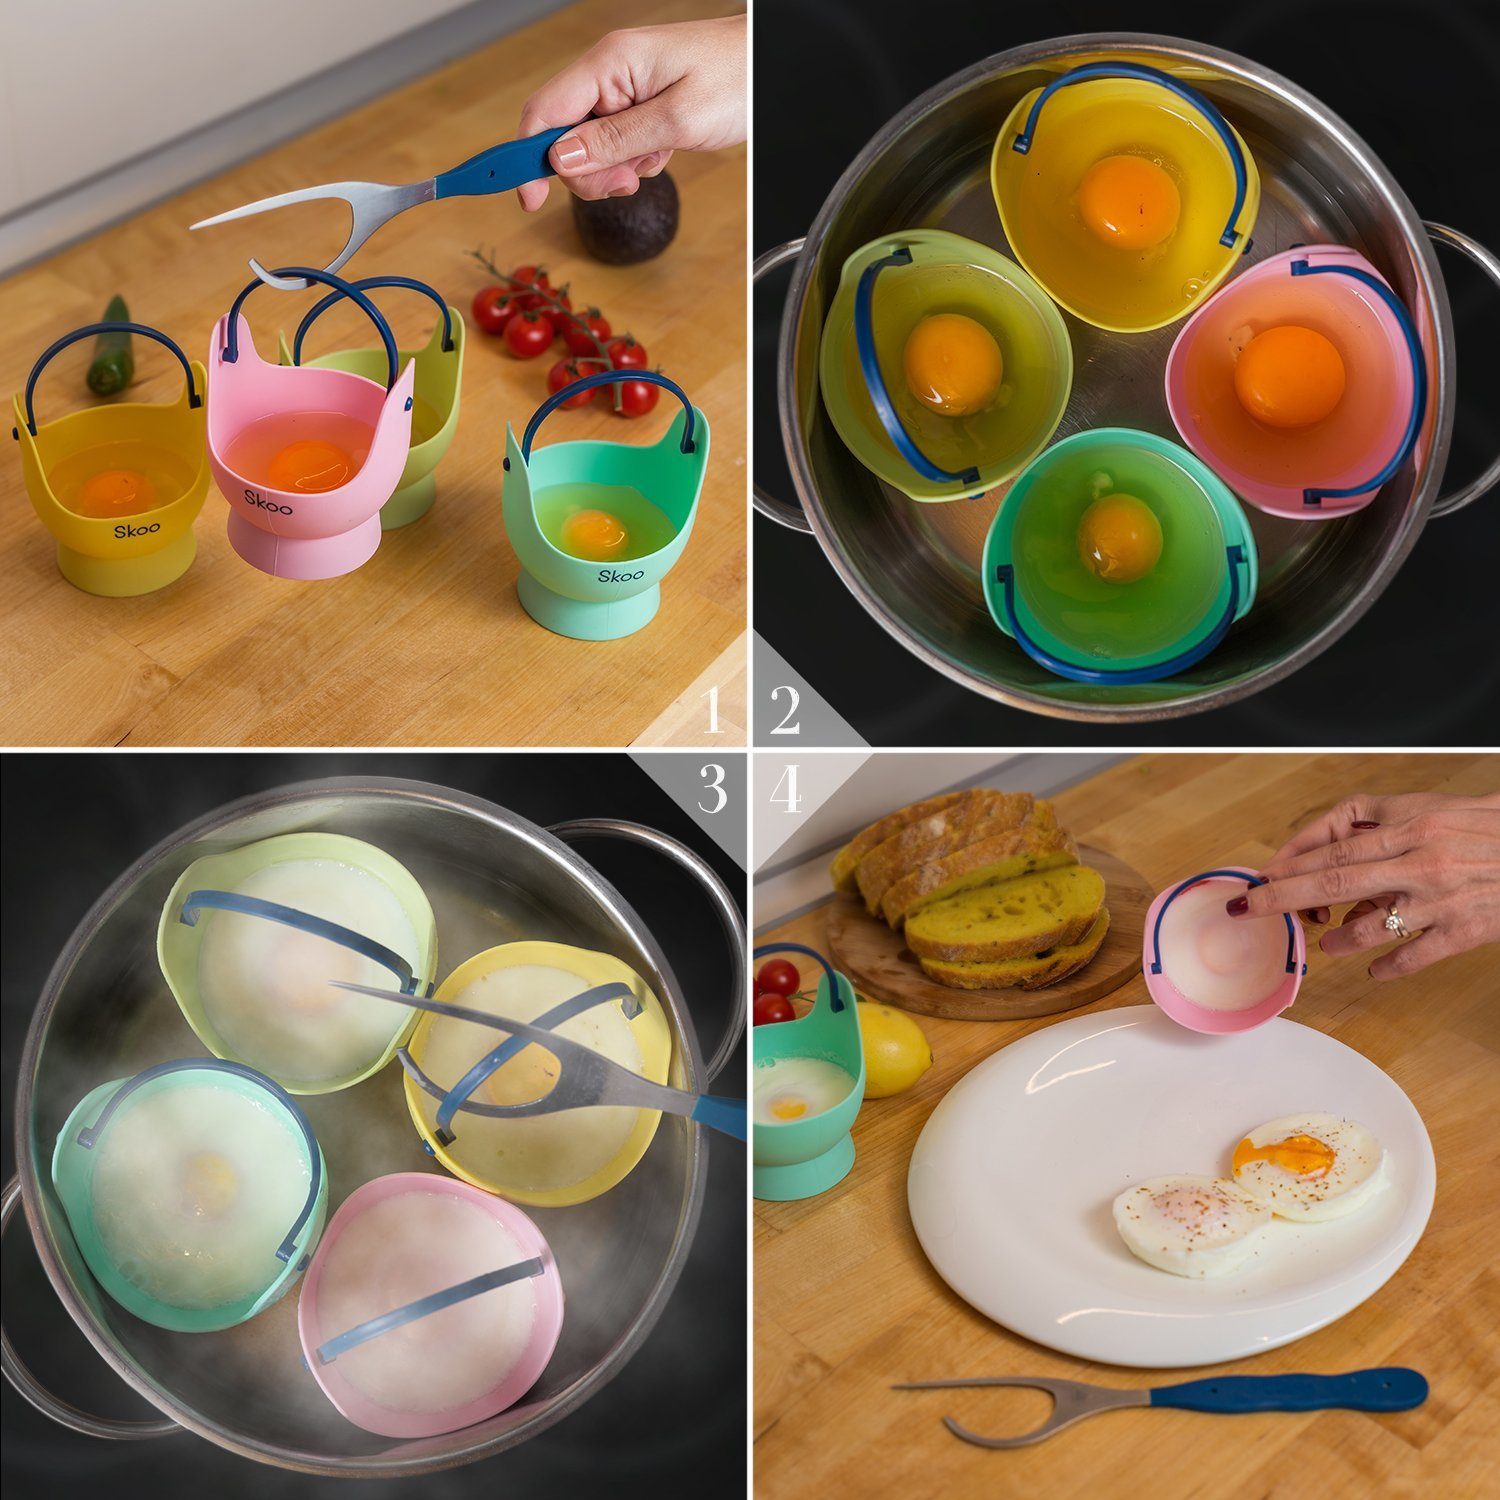 Silicone Egg Poacher Cups + Free Fork - Egg Cooker Set - Perfect Poached Egg Maker - For Stove Top, Microwave and Instant Pot by Skoo (Image #5)